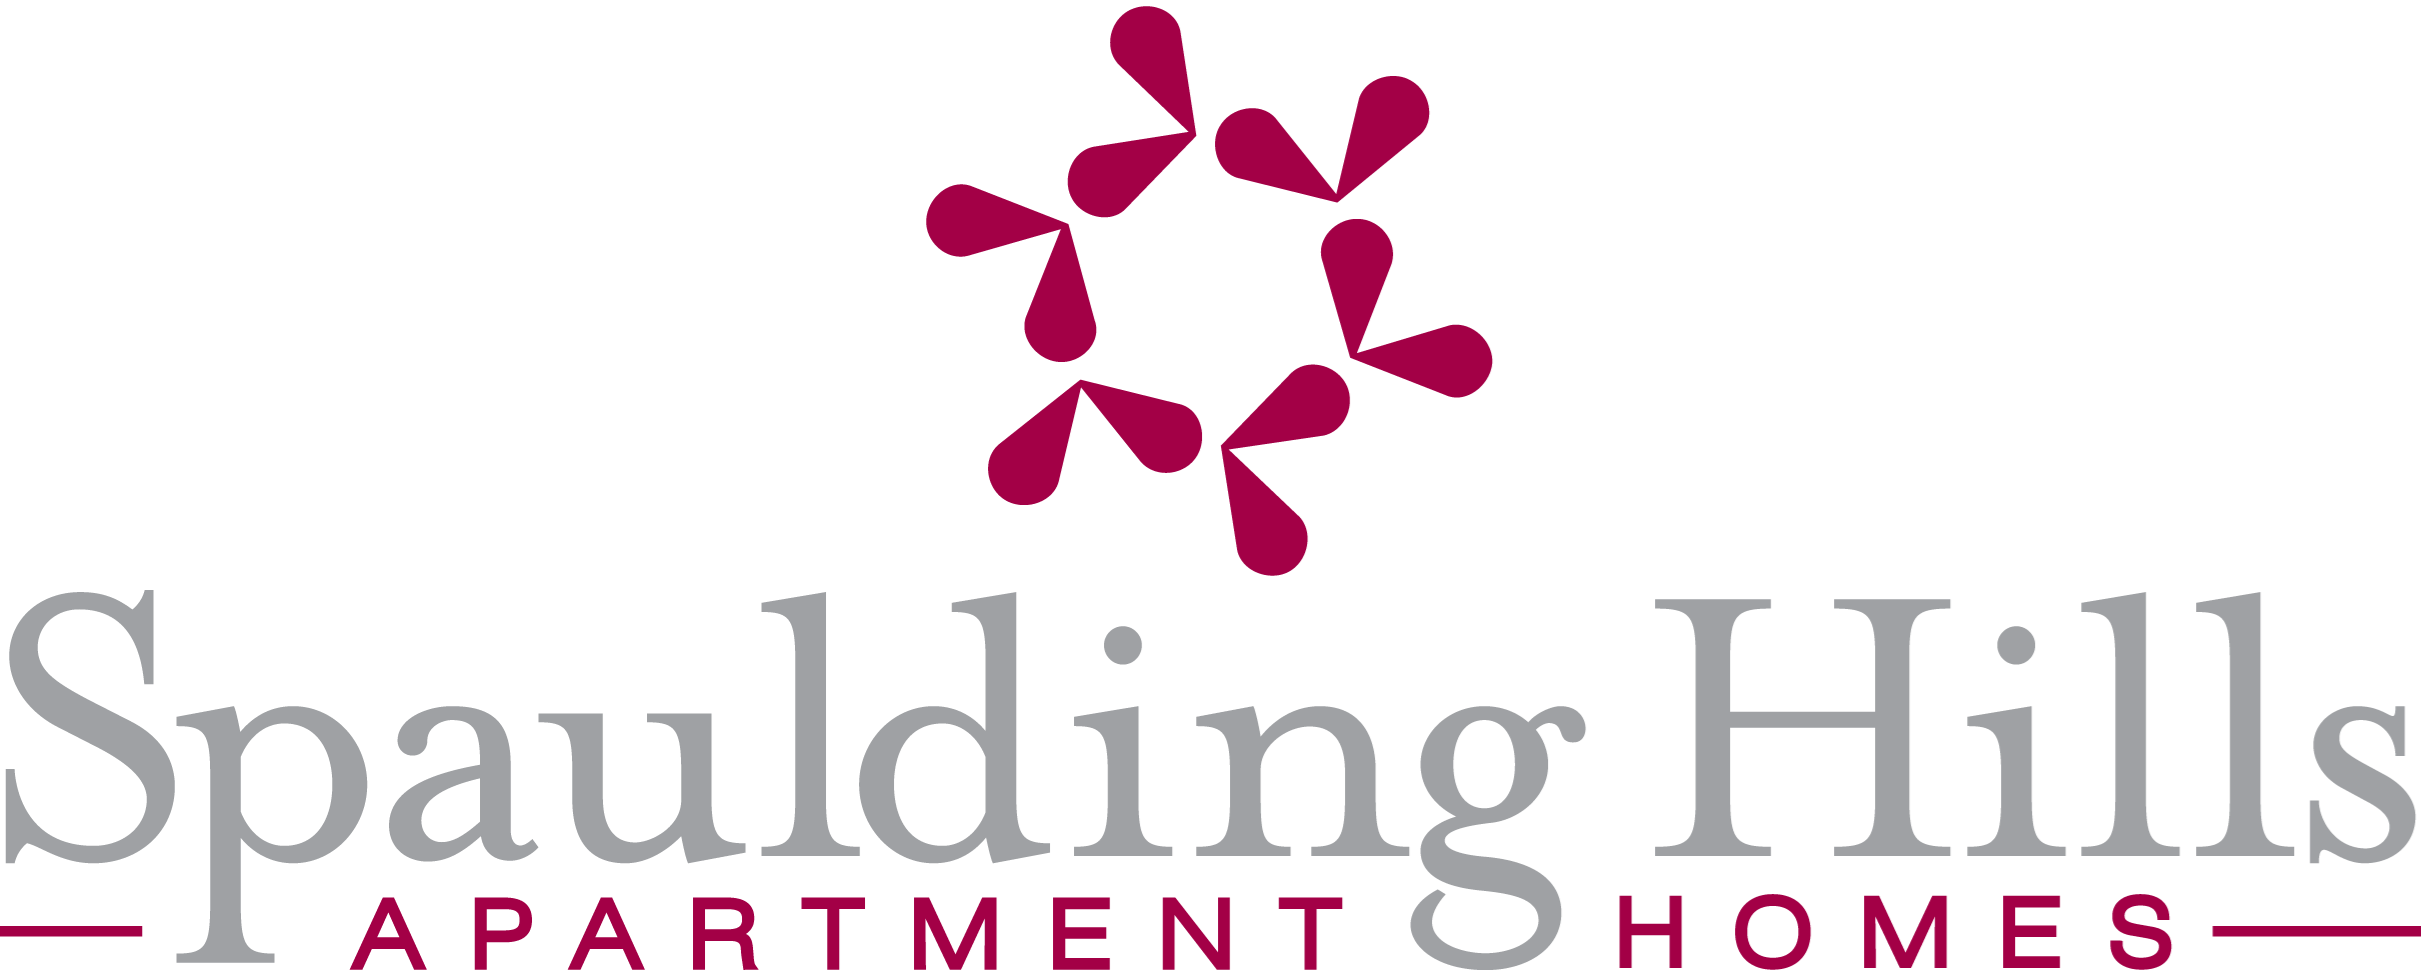 Spaulding Hills Apartments